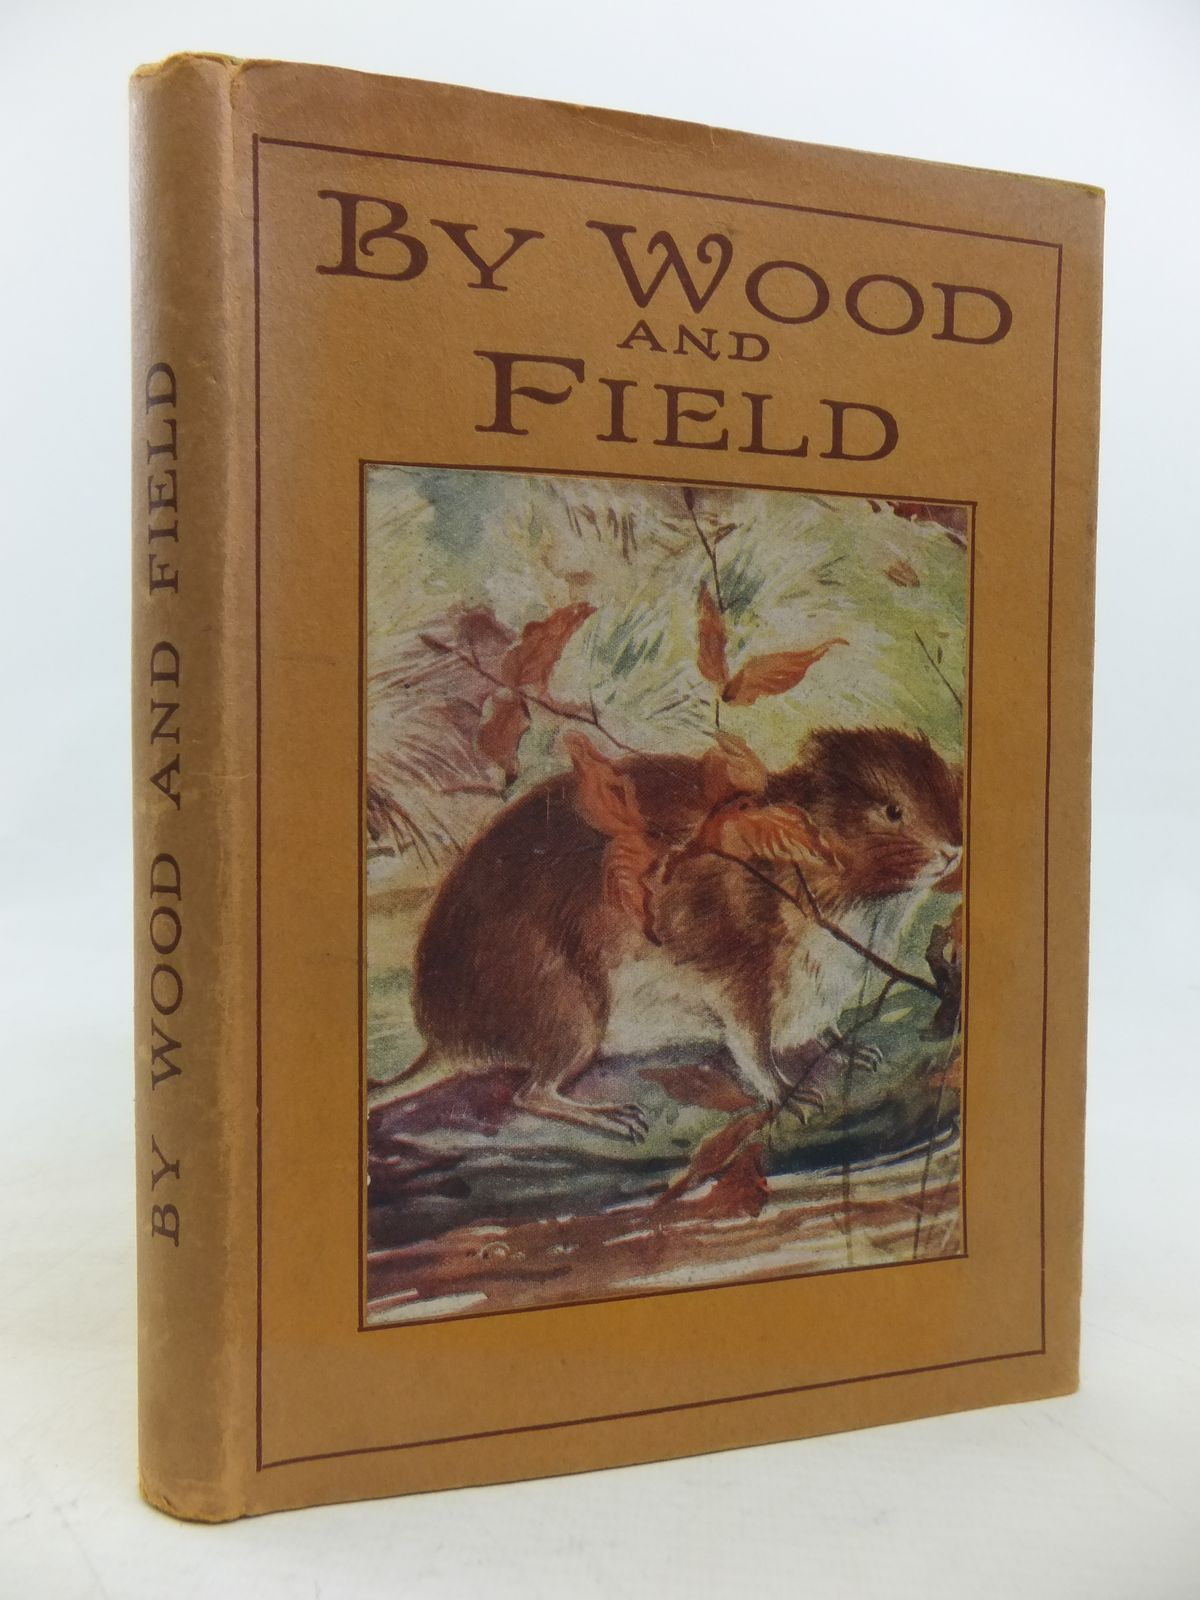 Photo of BY WOOD AND FIELD (DIGGERS AND BUILDERS) written by Hudson, R. published by Collins Clear-Type Press (STOCK CODE: 2115800)  for sale by Stella & Rose's Books